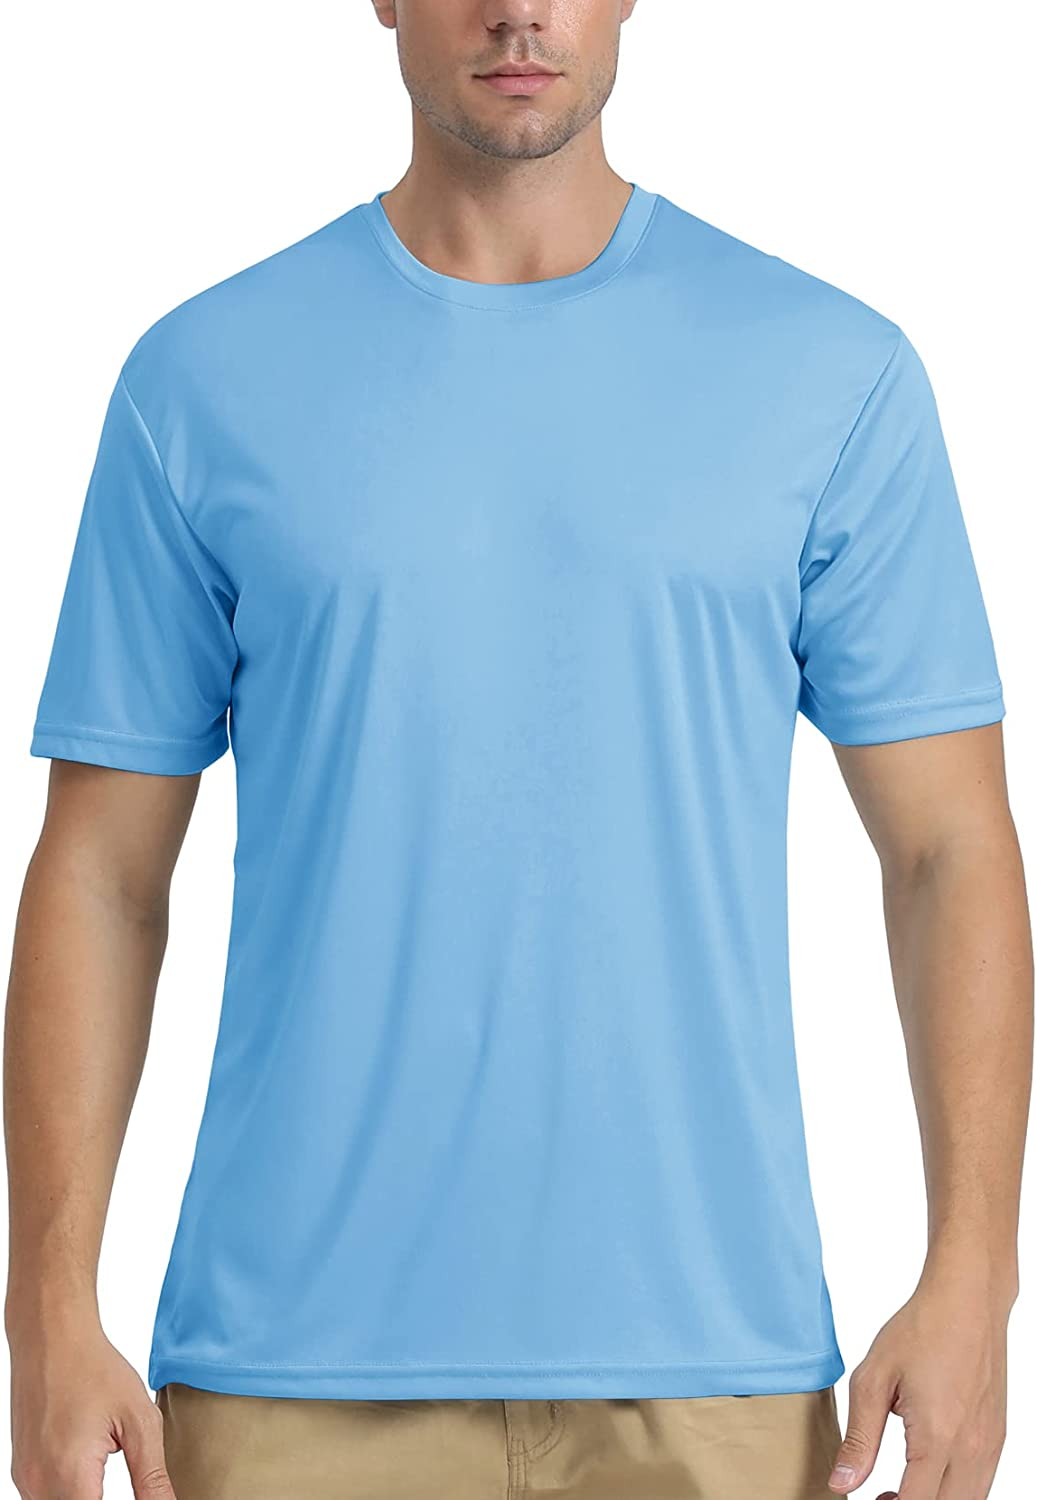 FASKUNOIE Men's UPF 50+ Sun Protection Athletic Short Sleeve Shirts Quick Dry Lightweight Top